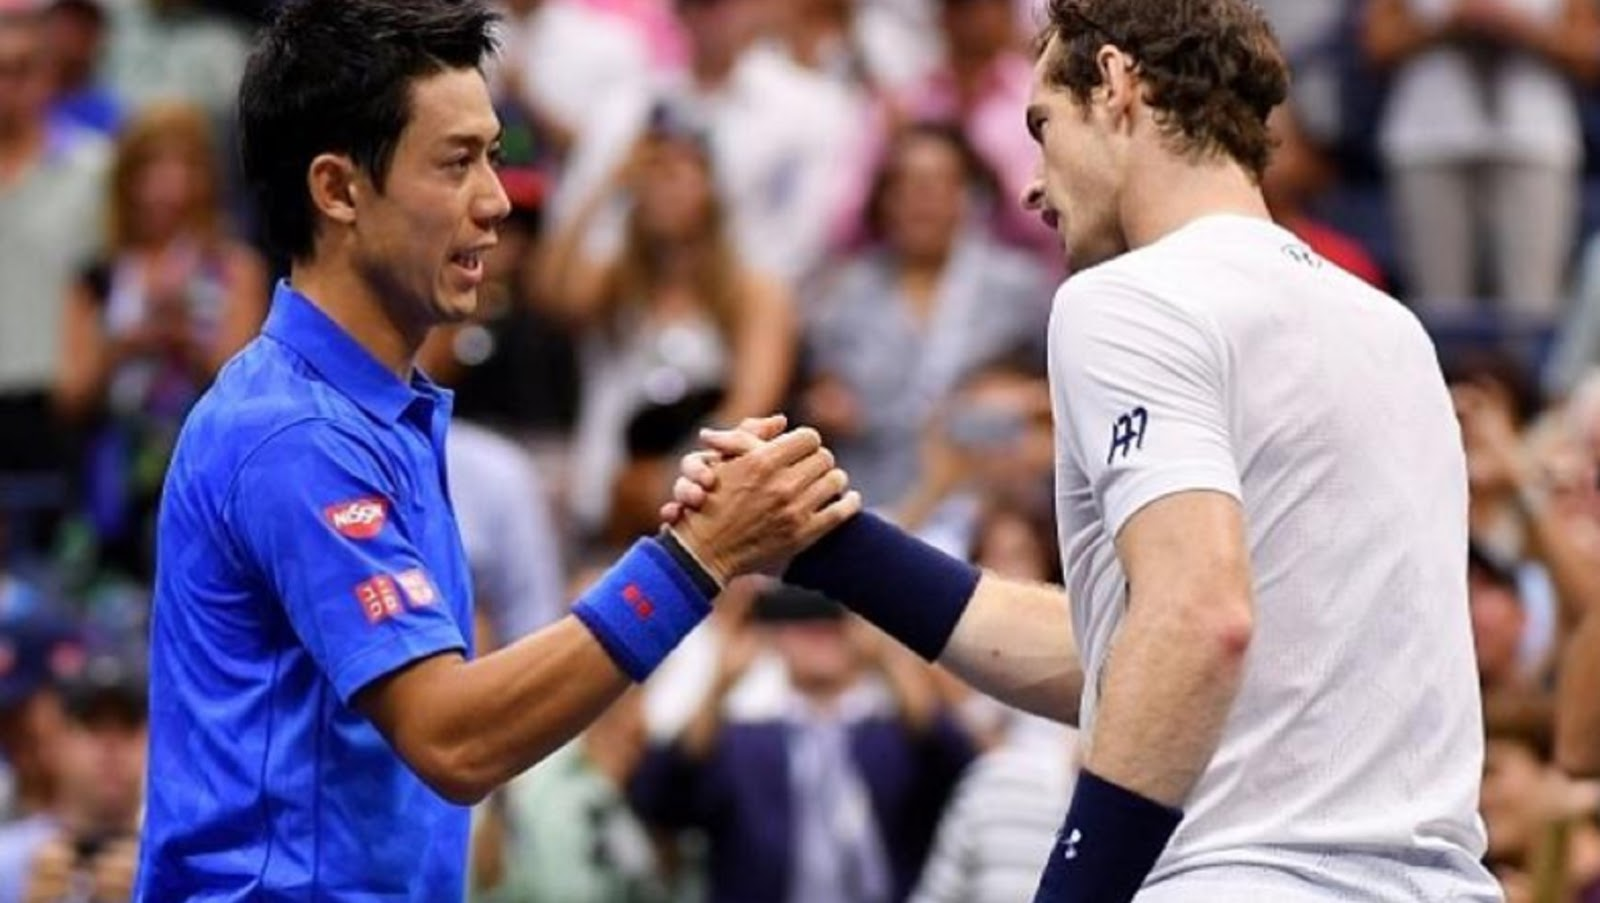 ANDY MURRAY VS. KEI NISHIKORI